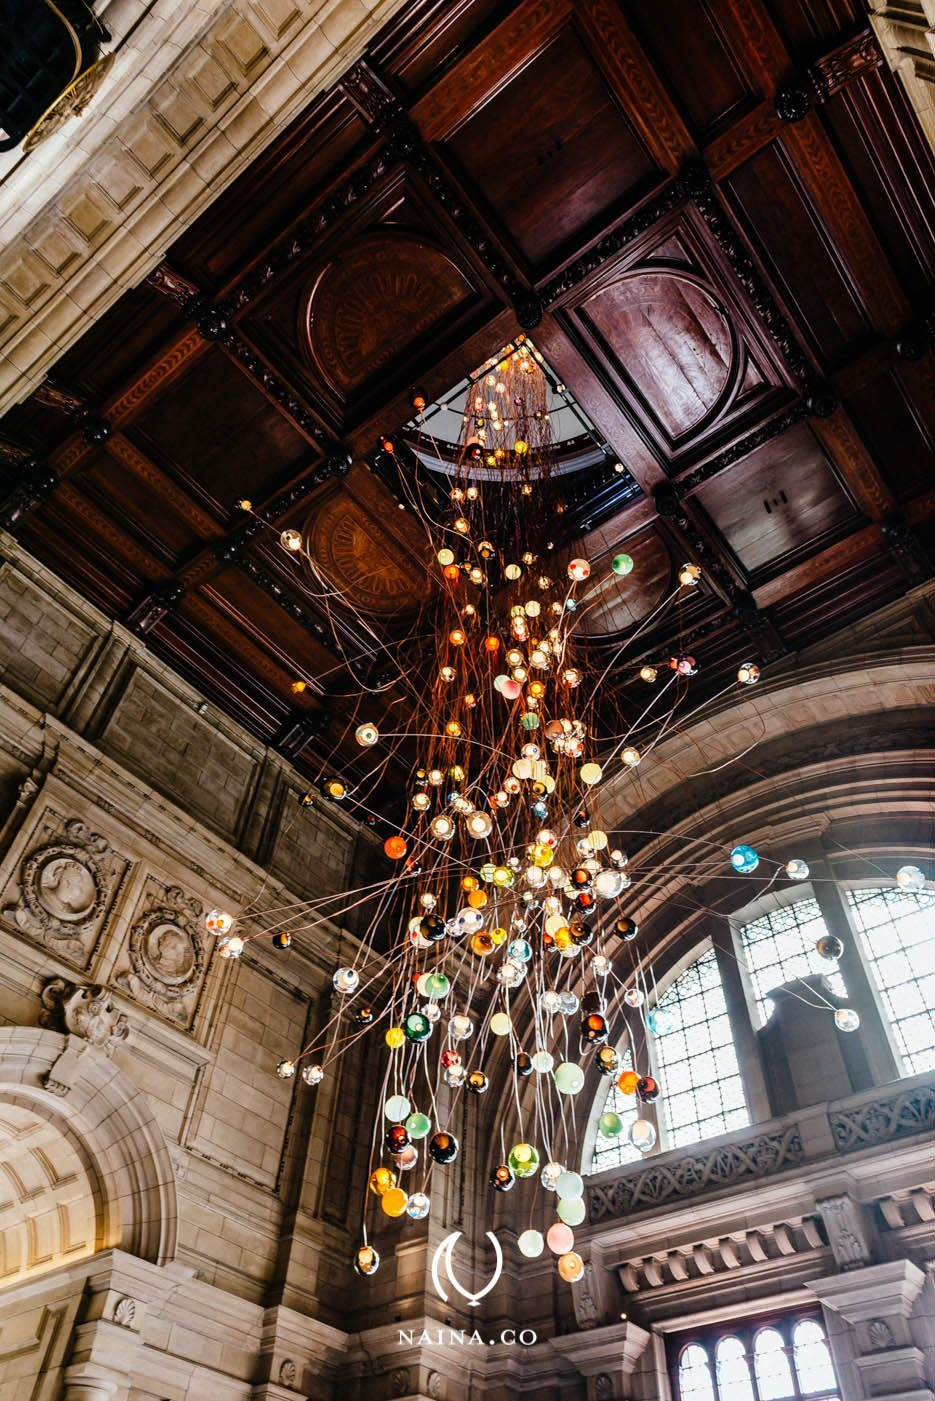 EyesForLondon-V&A-Victoria-Albert-Museum-Naina.co-Raconteuse-Storyteller-Photographer-Travel-Tourism